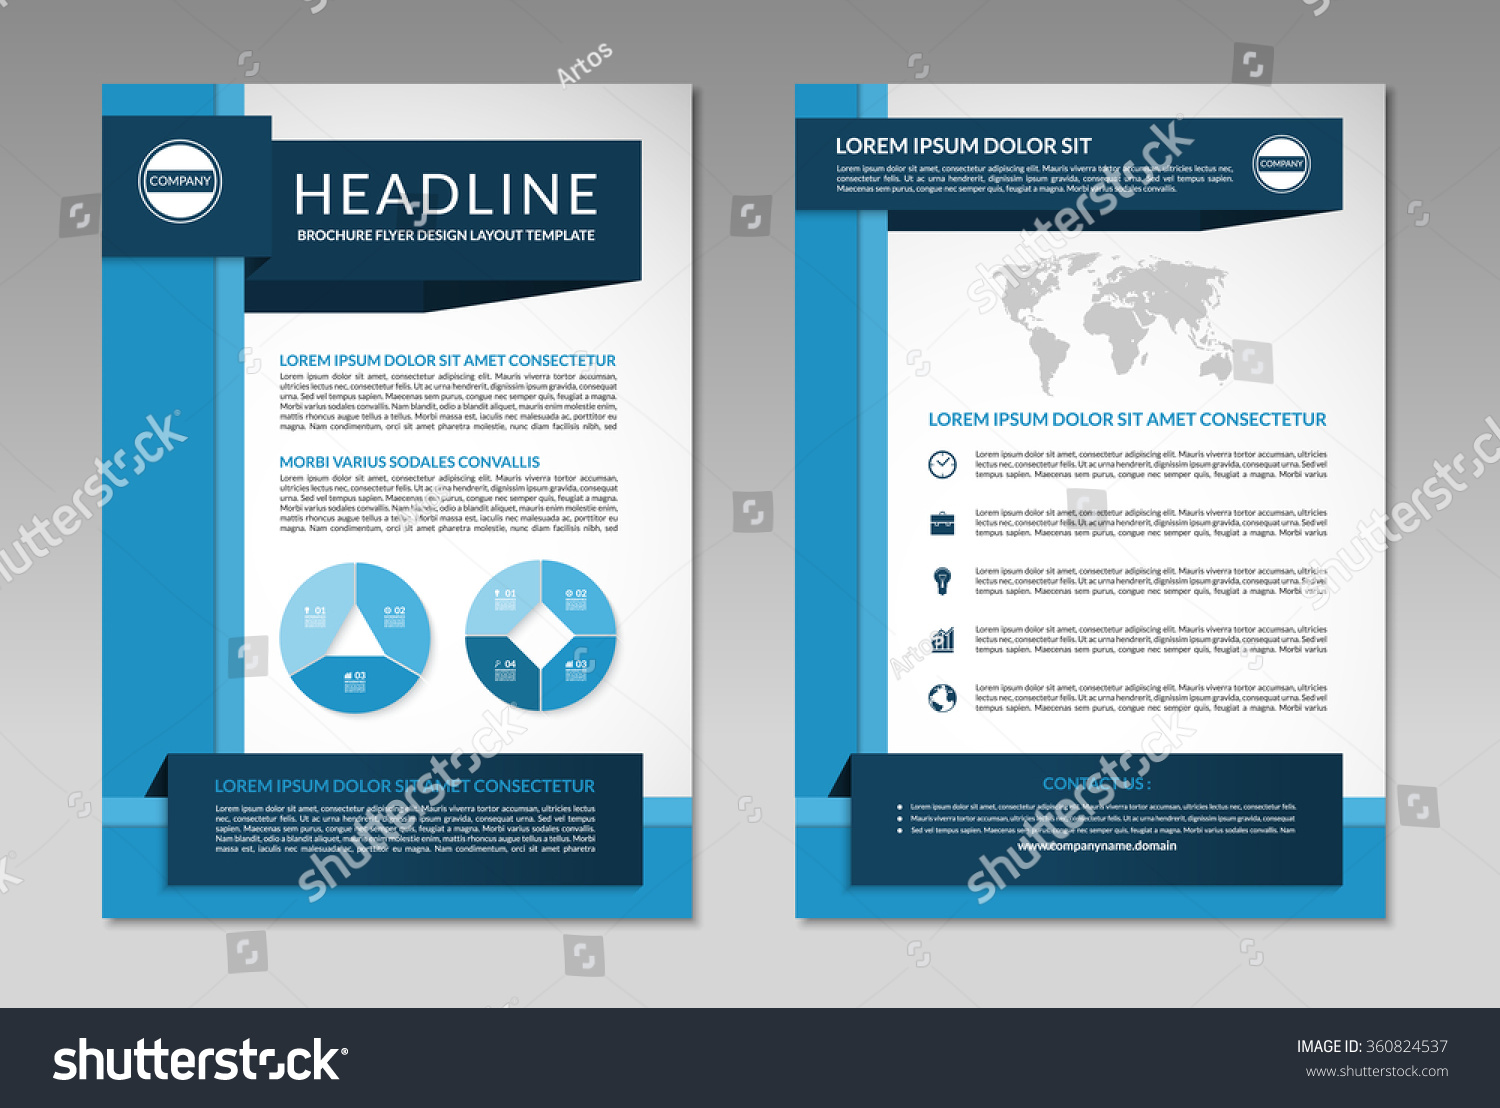 brochure flyer design layout template front stock vector  brochure flyer design layout template front and back page in a4 size business background